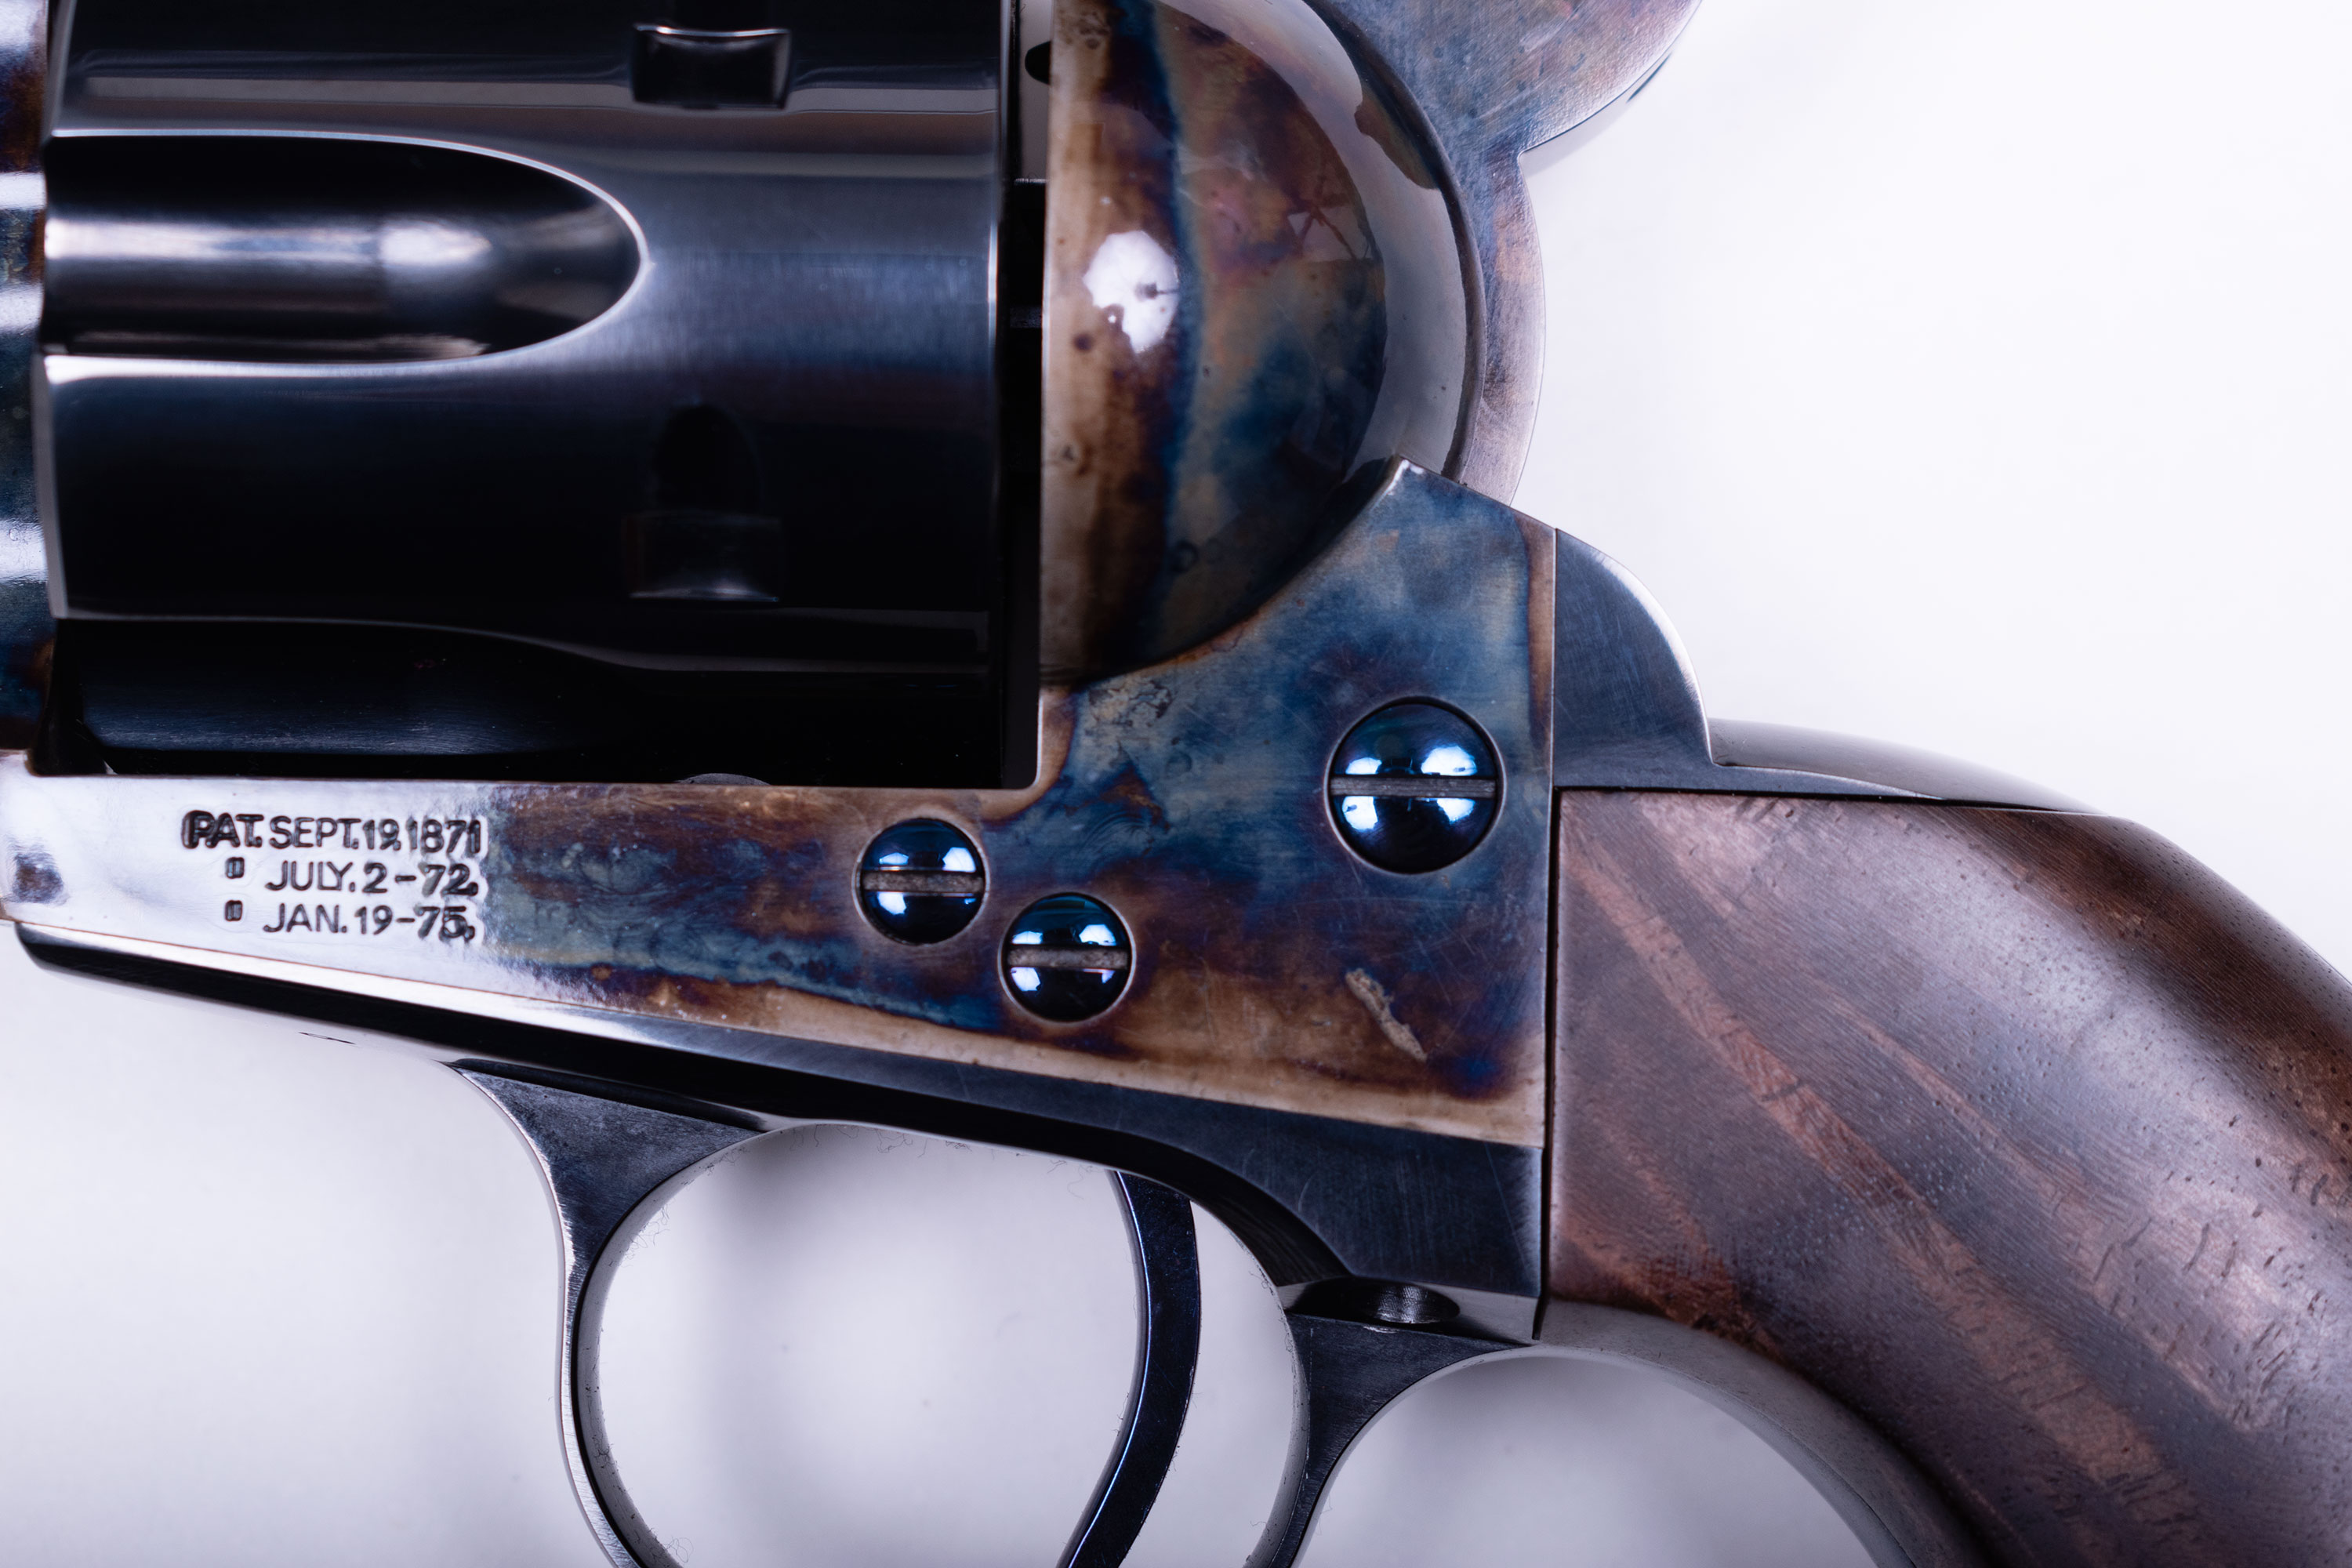 Standard Mfg. SAA Revolvers High-Res Photos